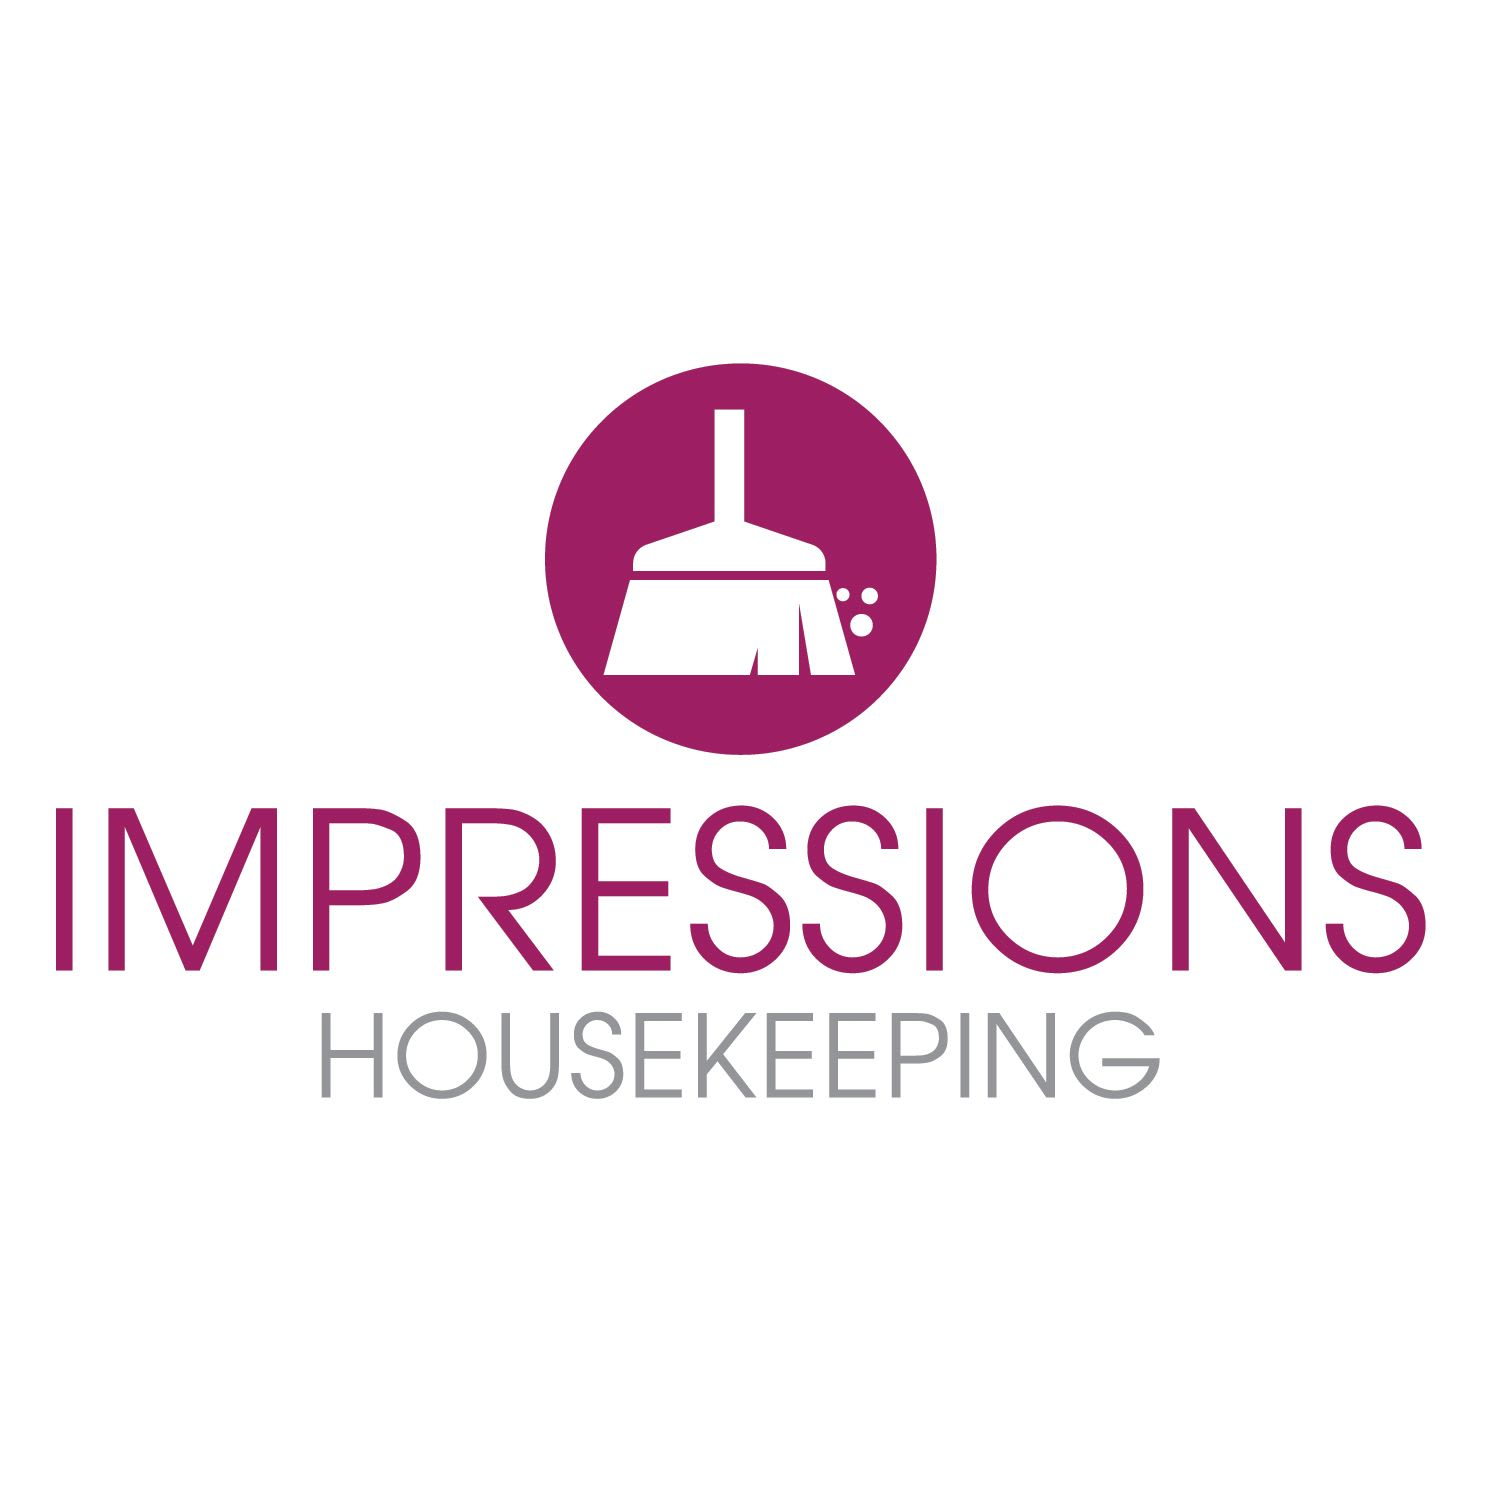 Senior living house keeping impressions in The Villages.